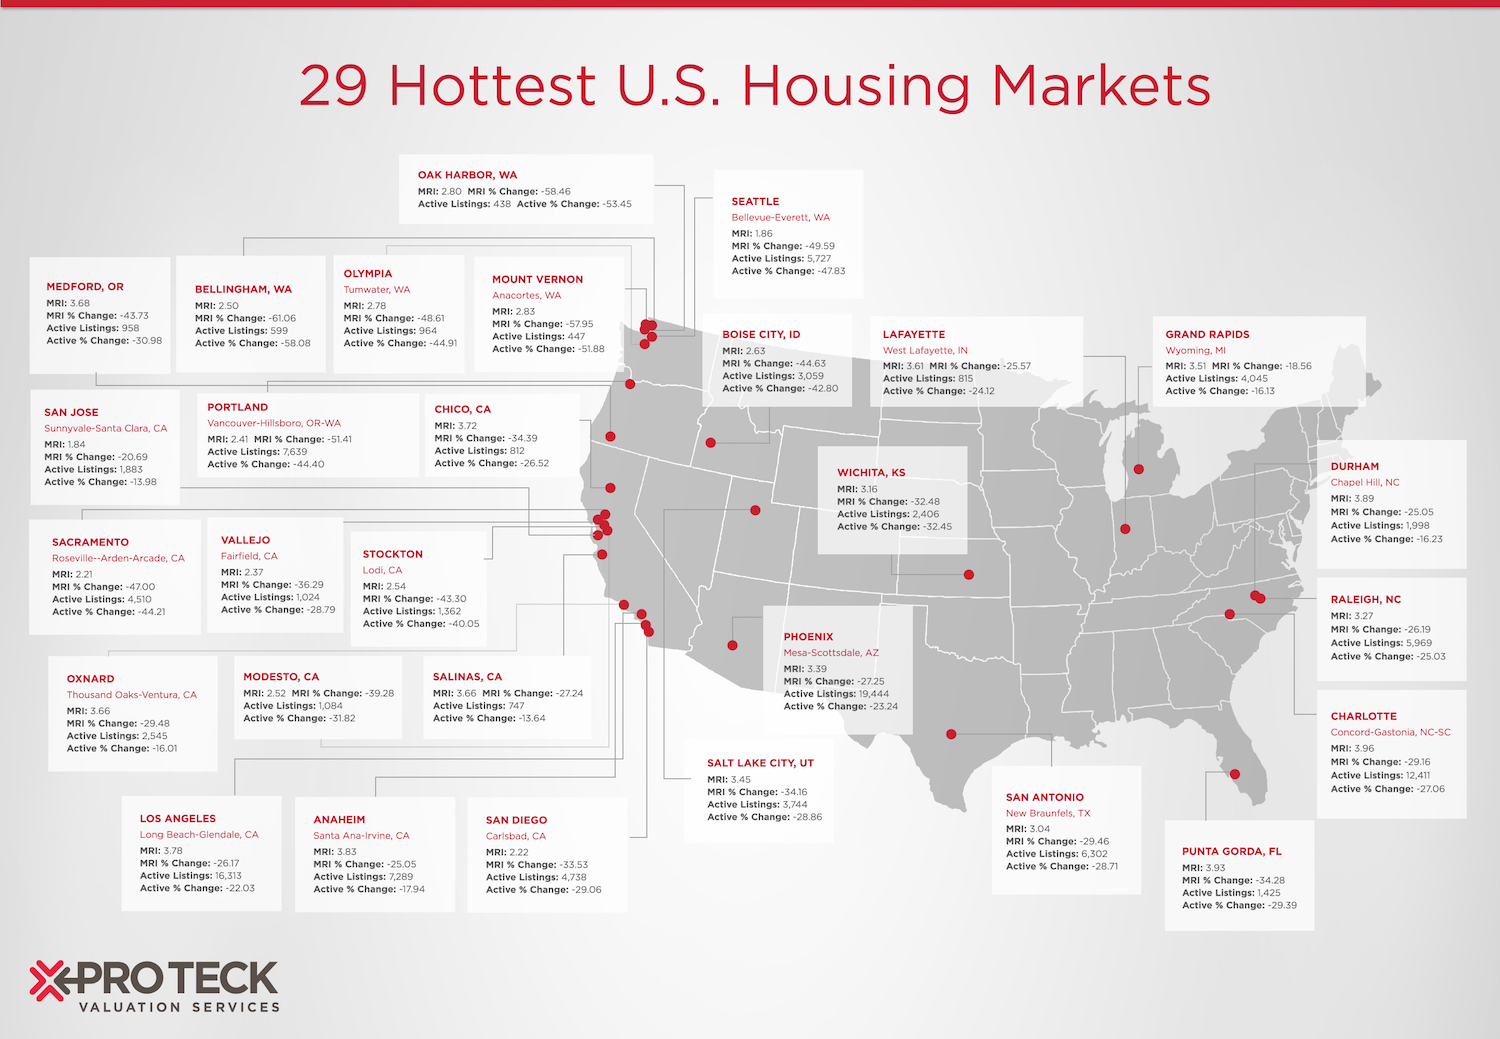 the 4 hottest housing markets on the east coast